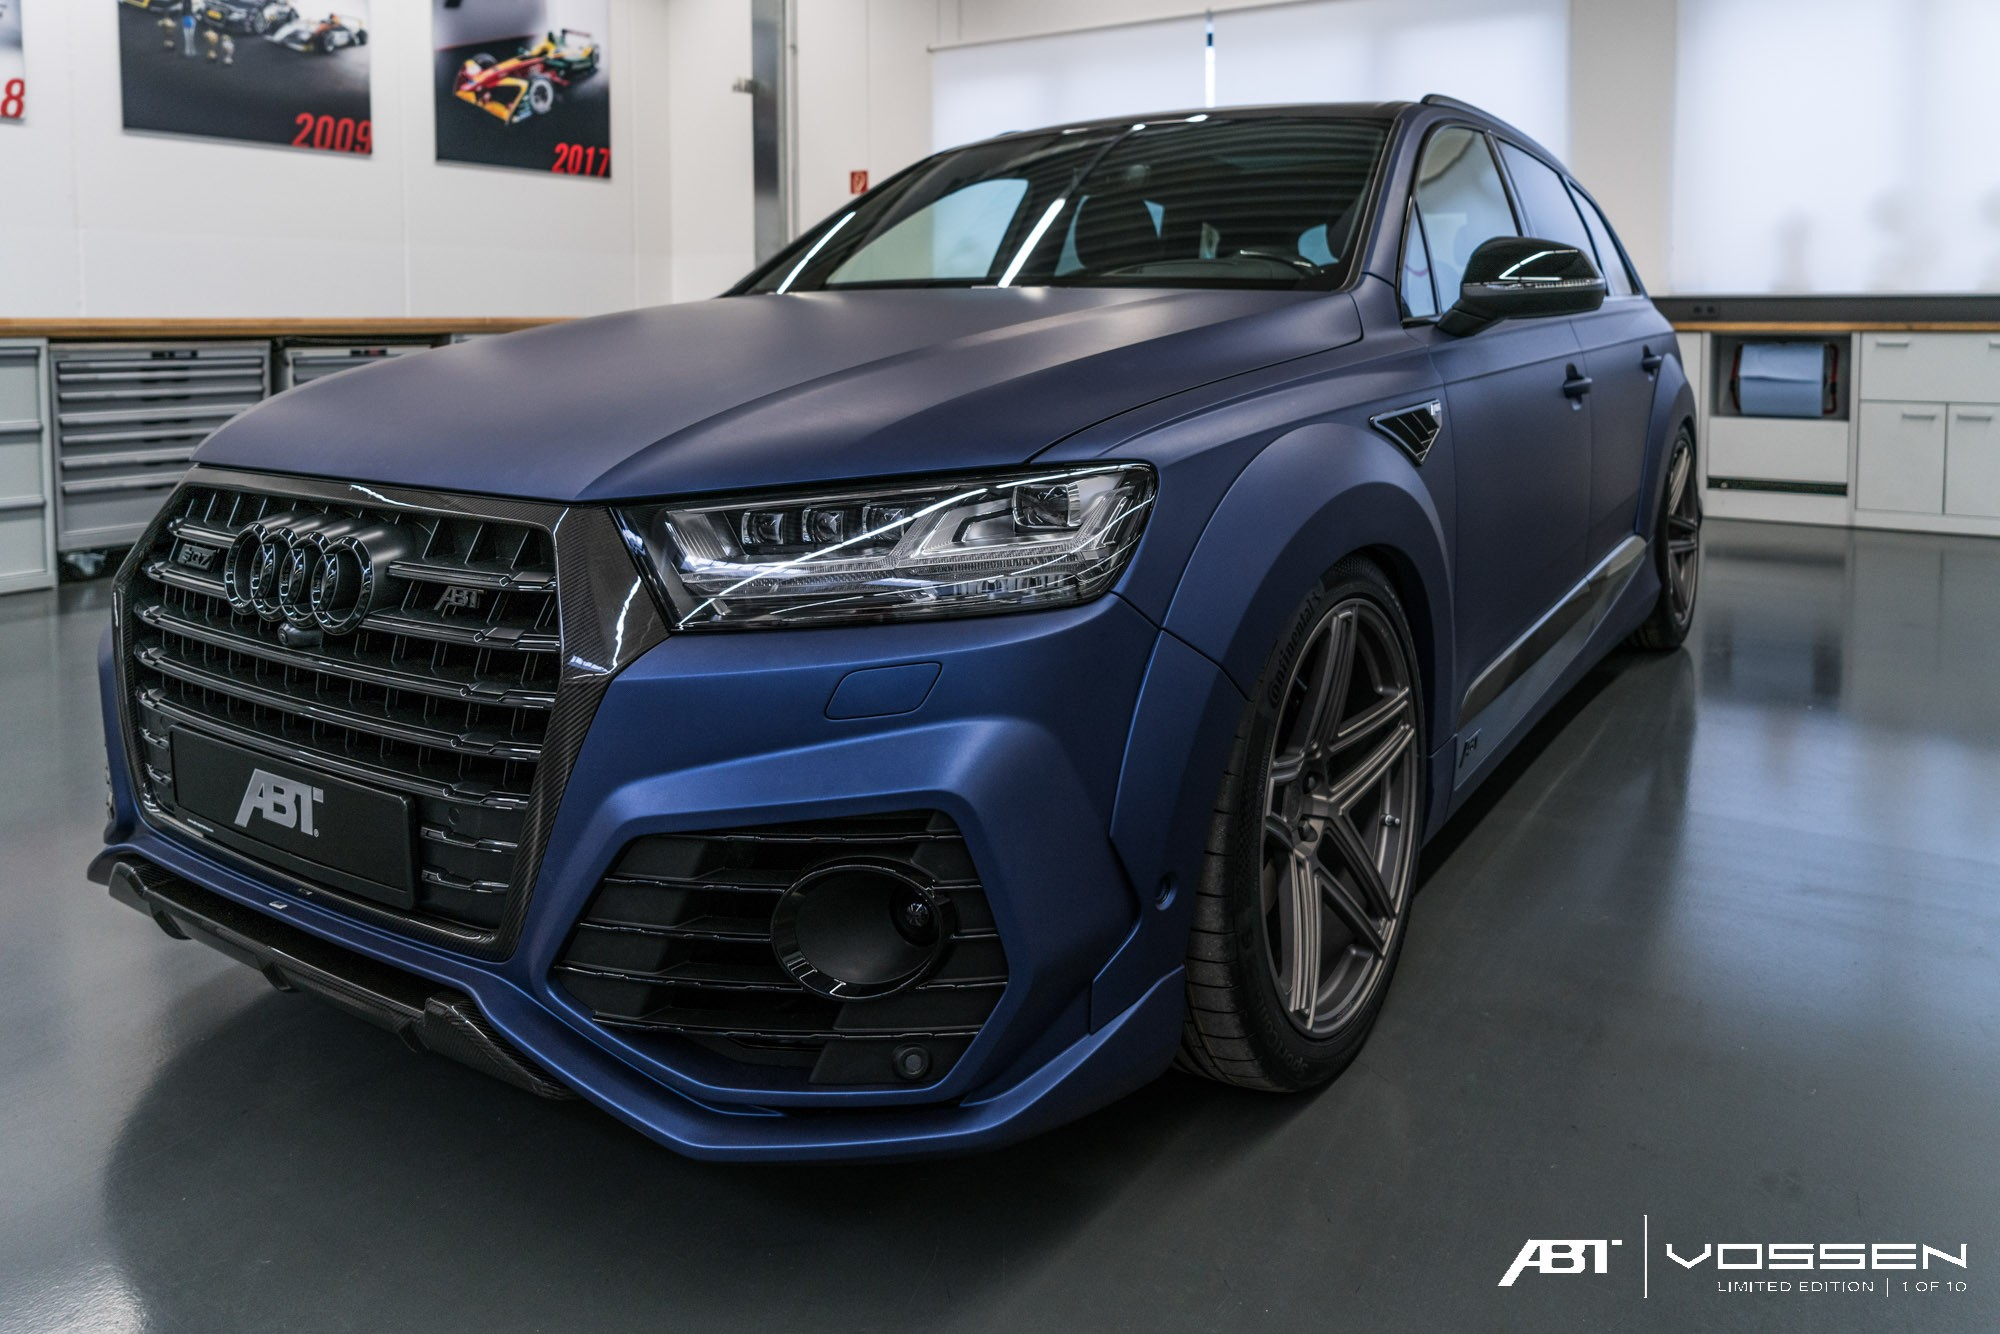 audi q7 and sq7 get abt widebody kit and vossen forged. Black Bedroom Furniture Sets. Home Design Ideas